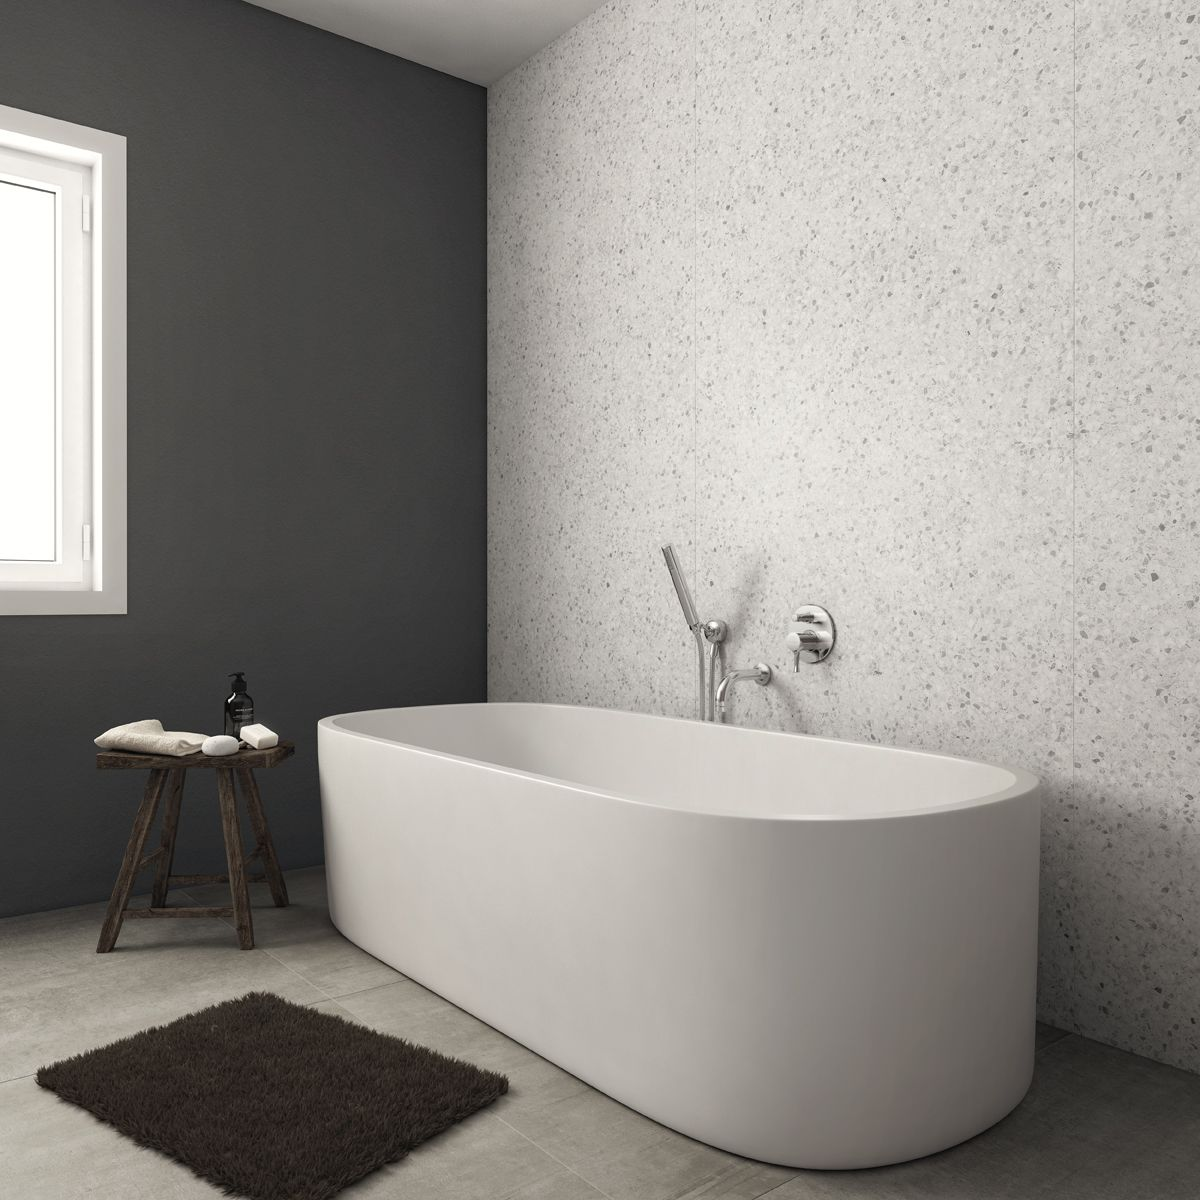 Inalco presents Fluorite a new porcelain tile collection